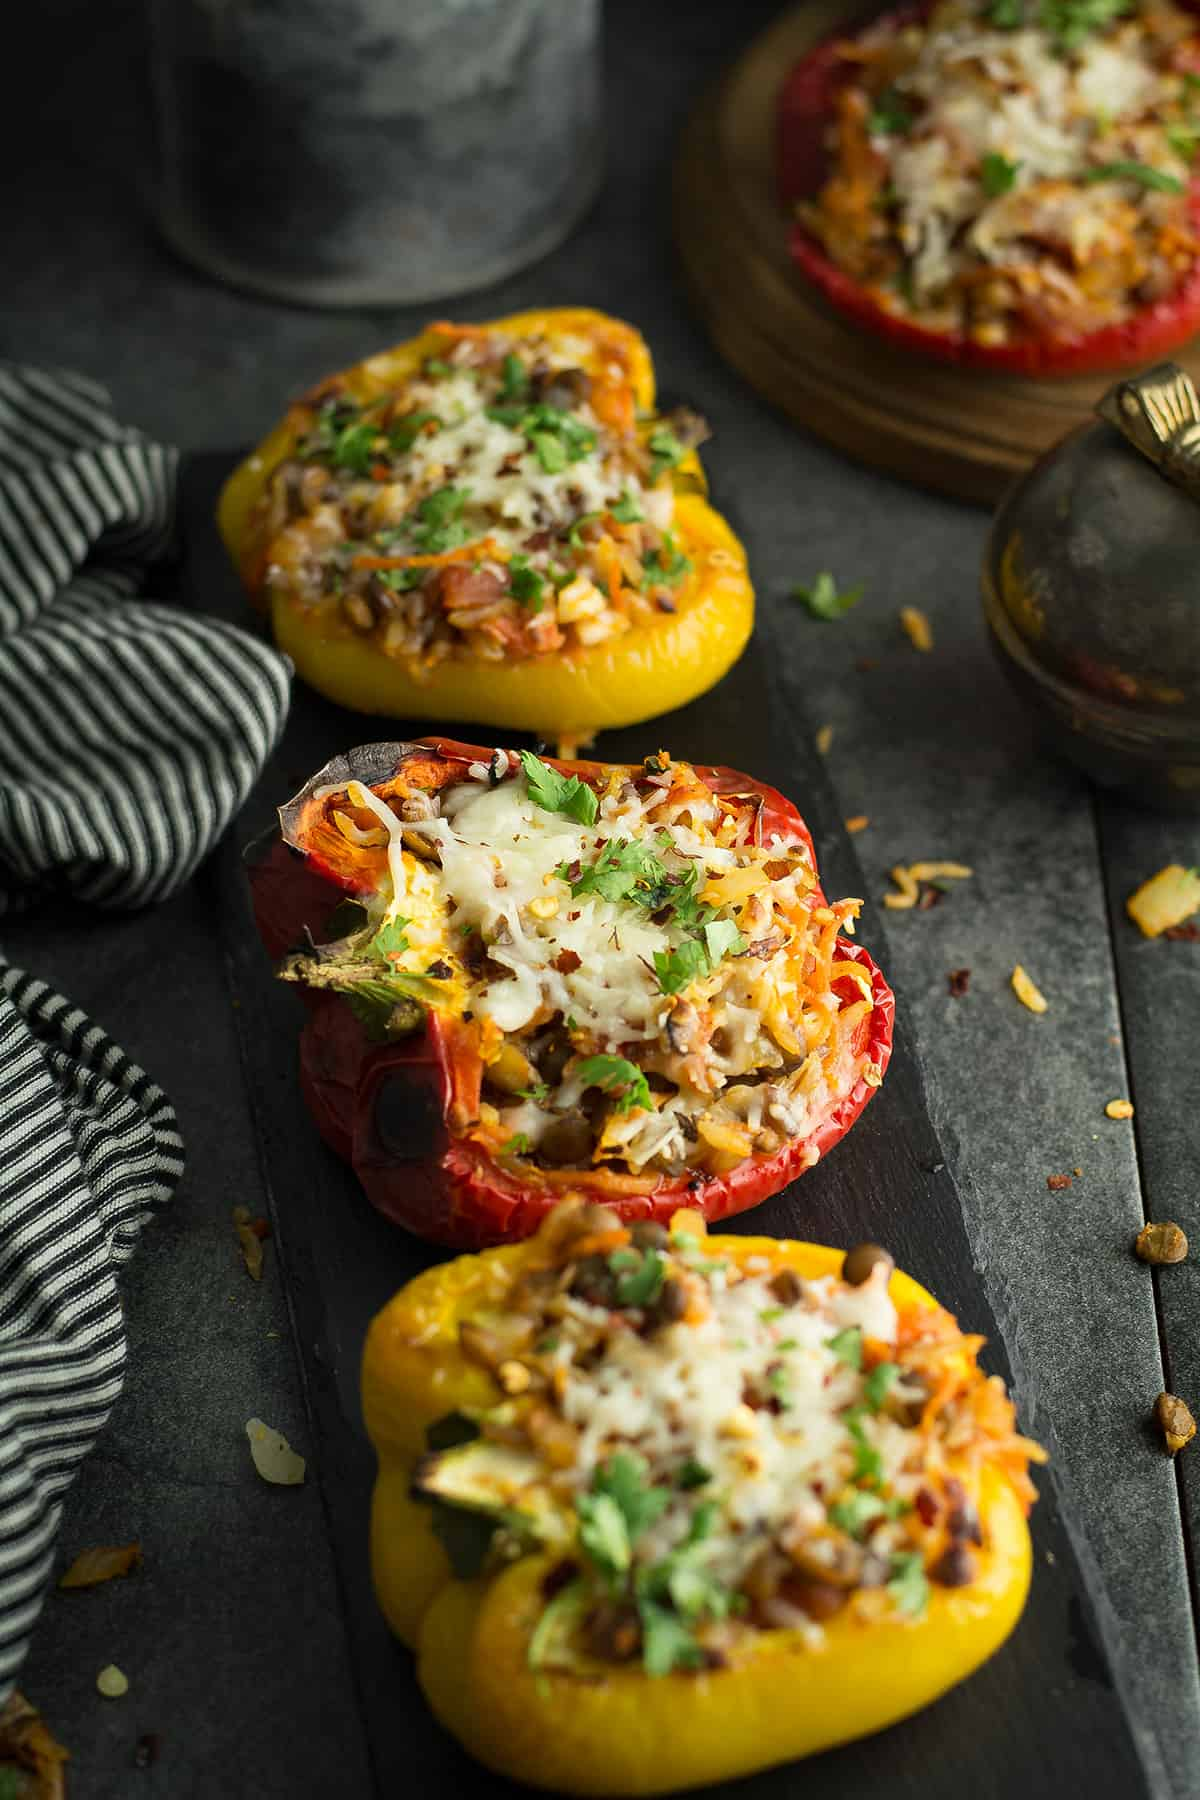 This Lentil stuffed peppers recipe is extremely flexible, filling dish. Loaded with rice, lentil, and vegetables make it a wholesome meal. A freezer-friendly recipe, make ahead of time and enjoy your meal effortlessly.